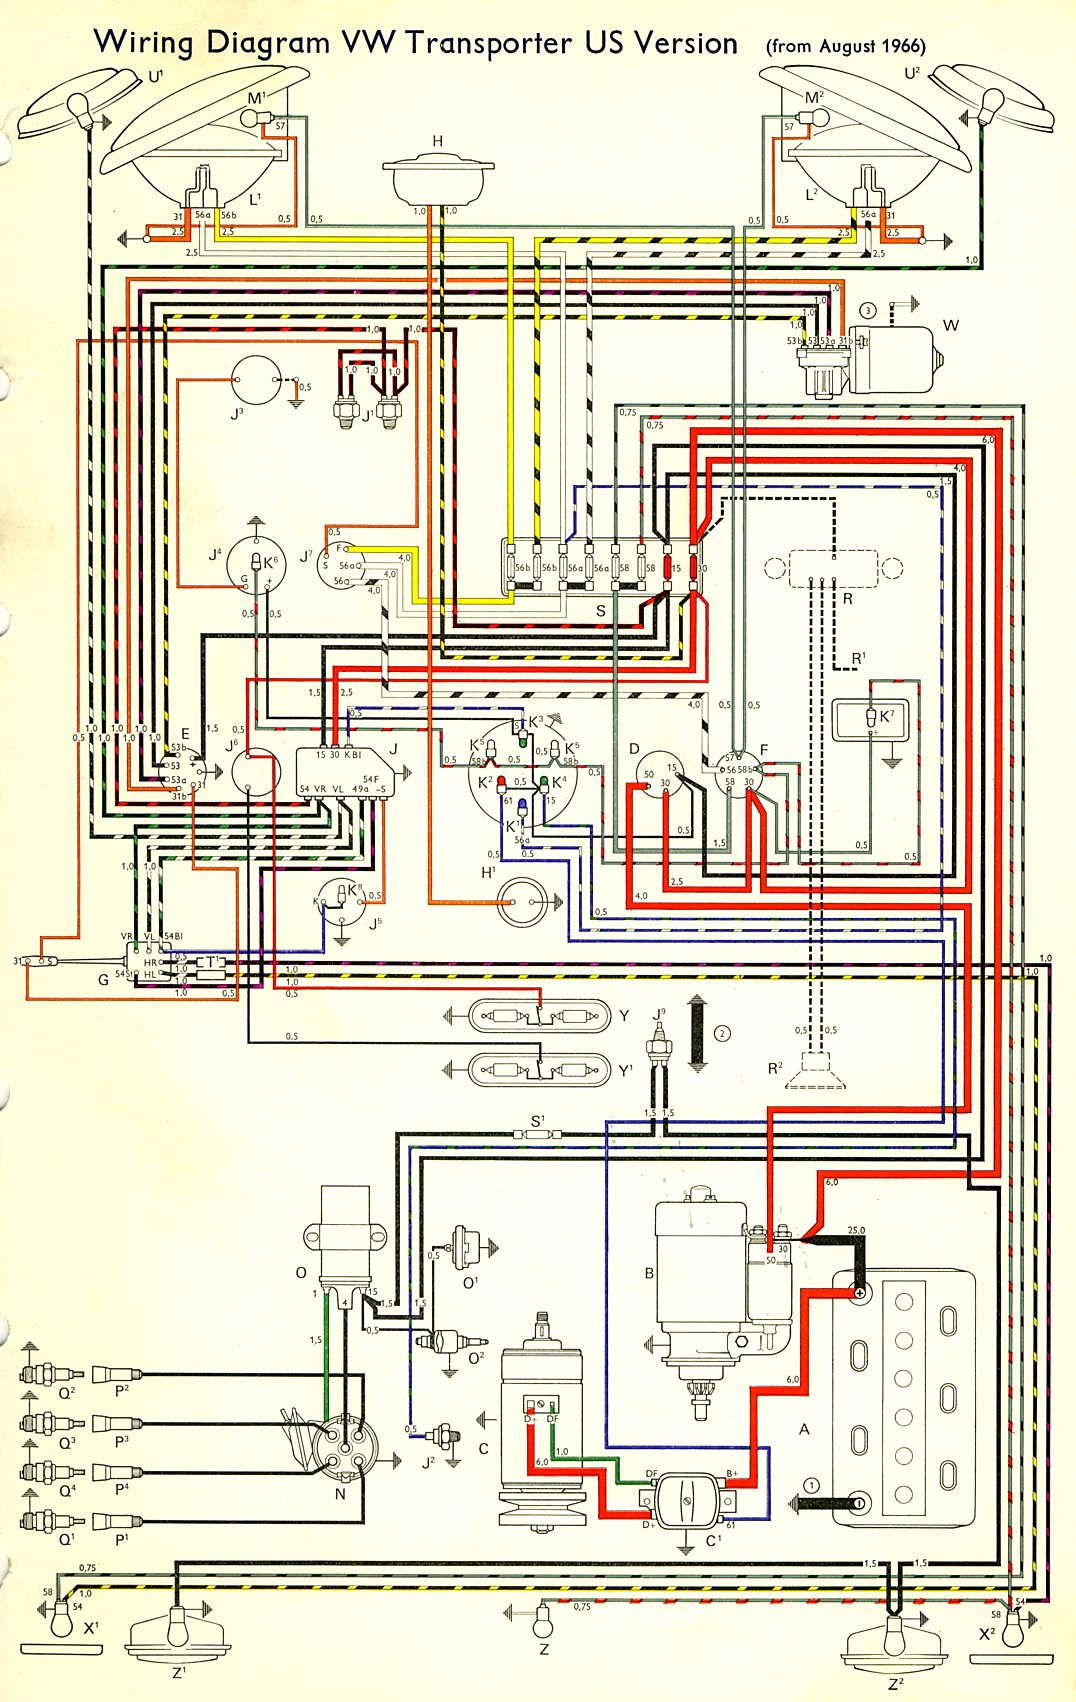 Type 2 Wiring Diagrams 1958 Chevy Diagram